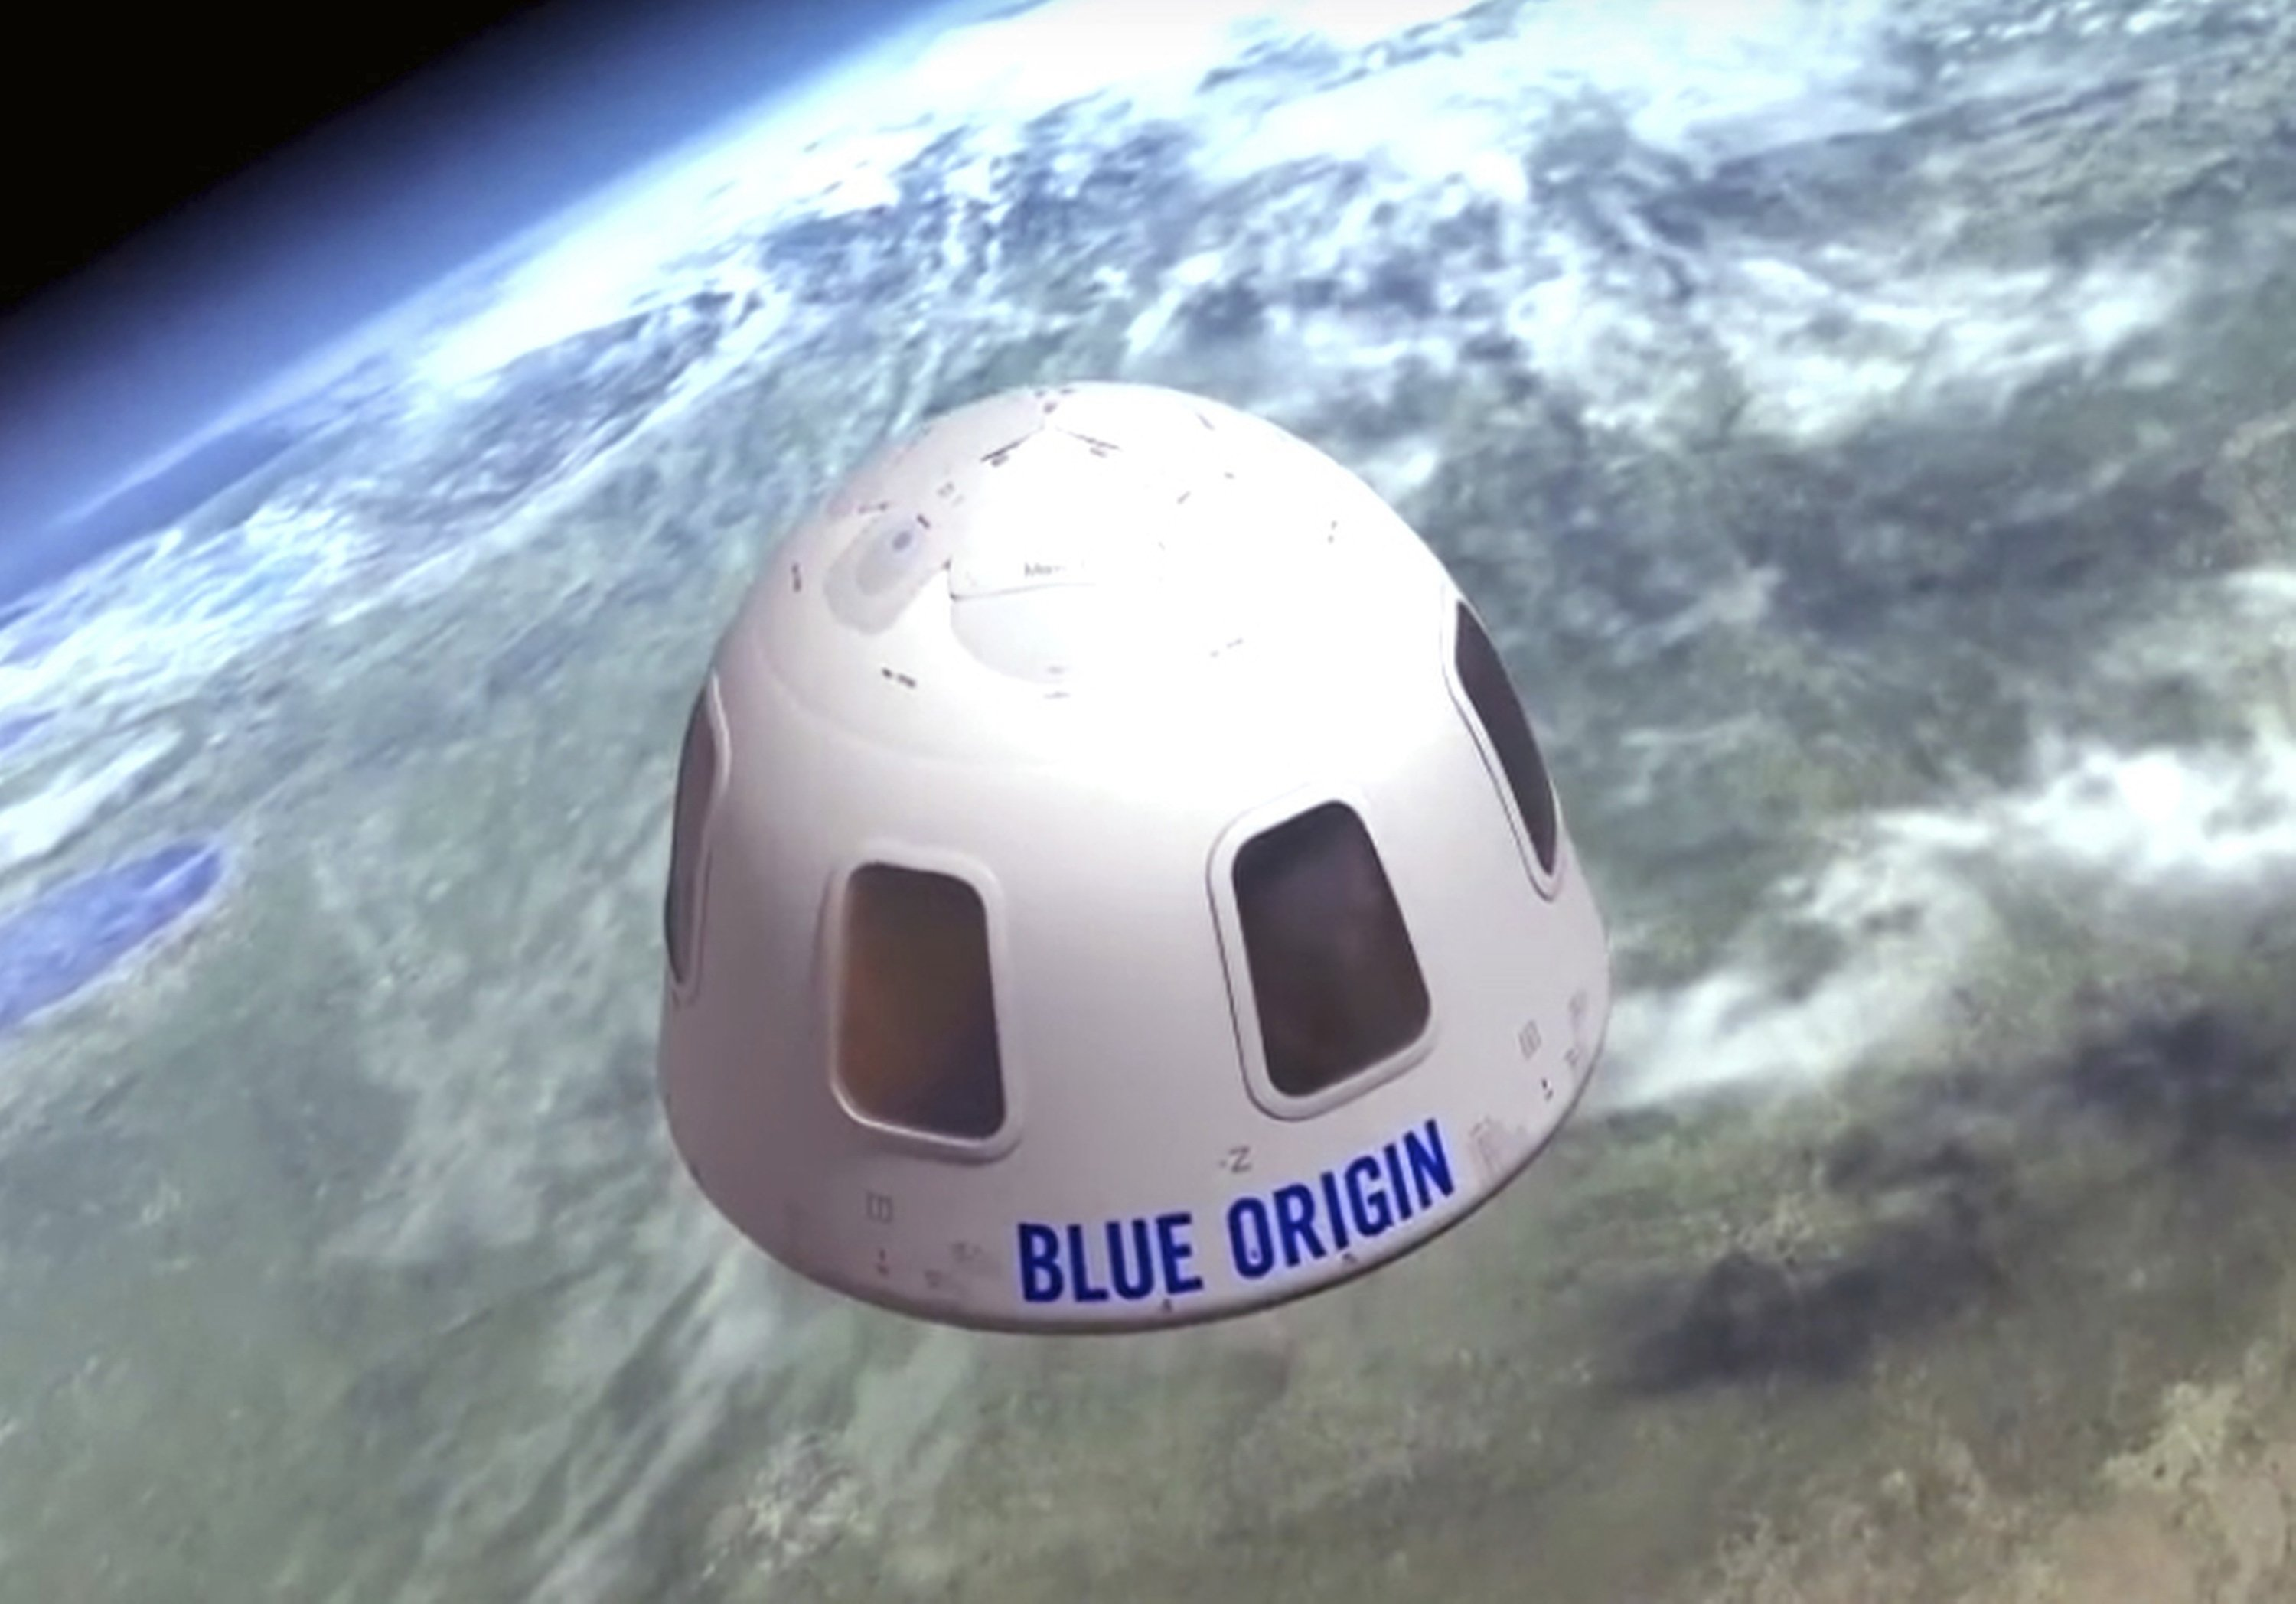 The capsule Blue Origin aims to take tourists into space with floats over Earth, in this undated file illustration provided by Blue Origin. (Blue Origin via AP)